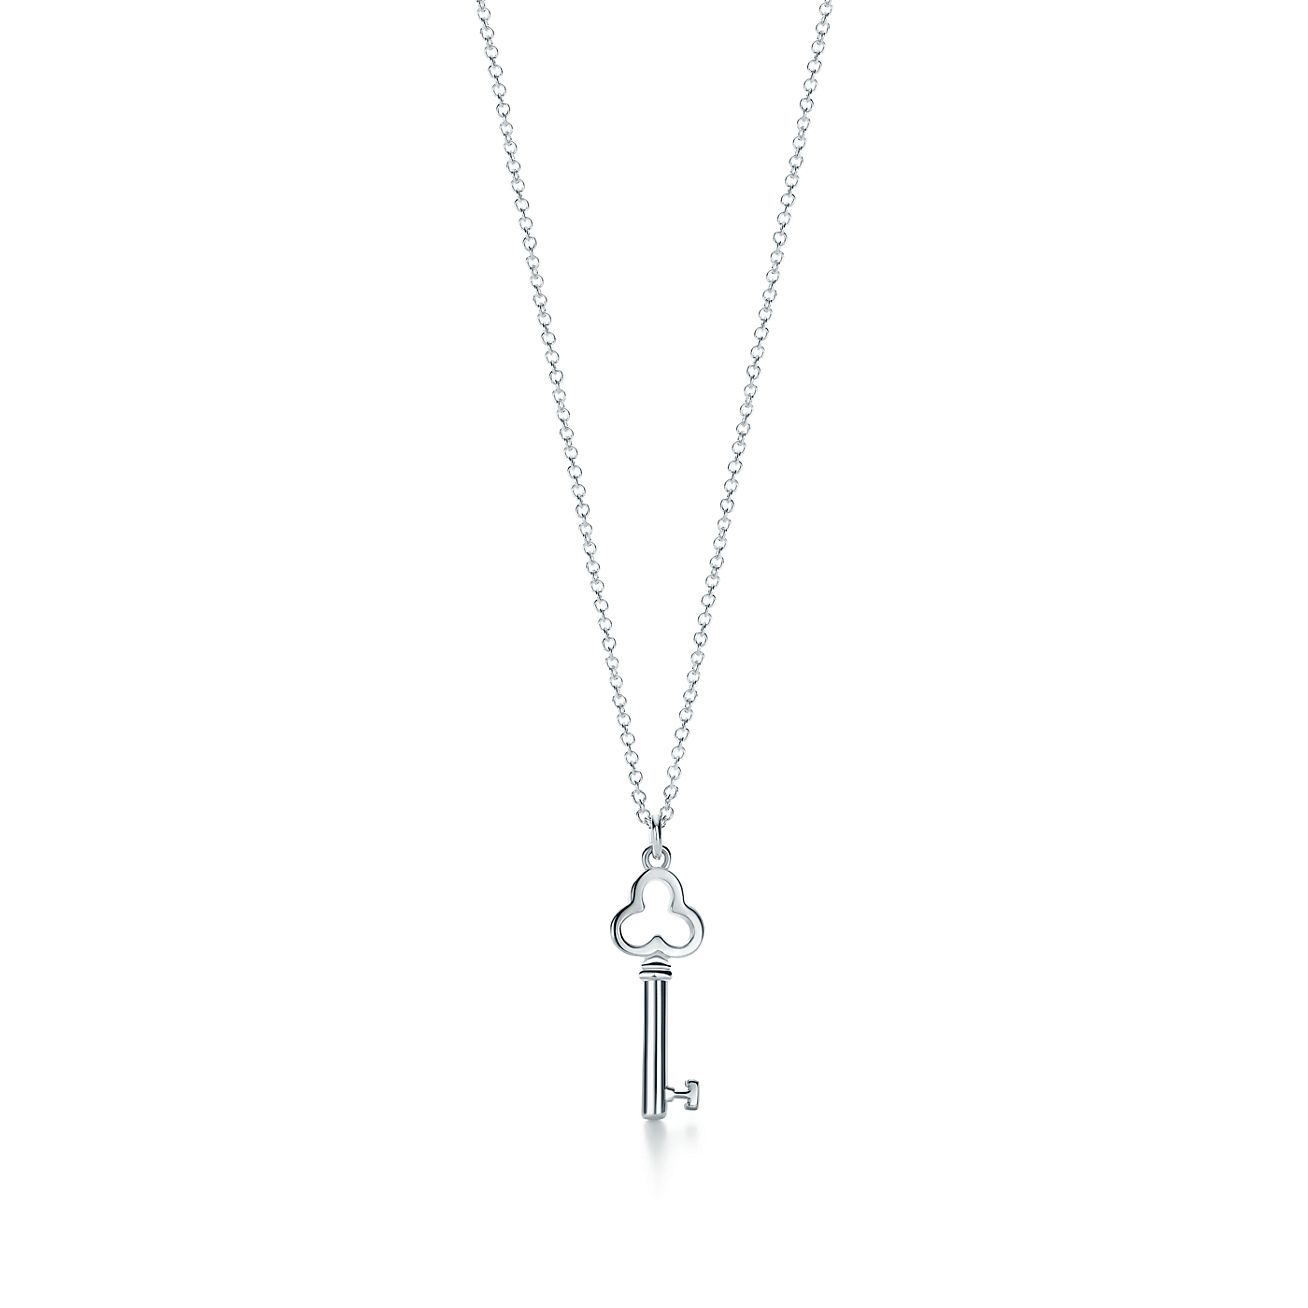 Tiffany keys trefoil key pendant in sterling silver mini tiffany tiffany keystrefoil key pendant aloadofball Gallery